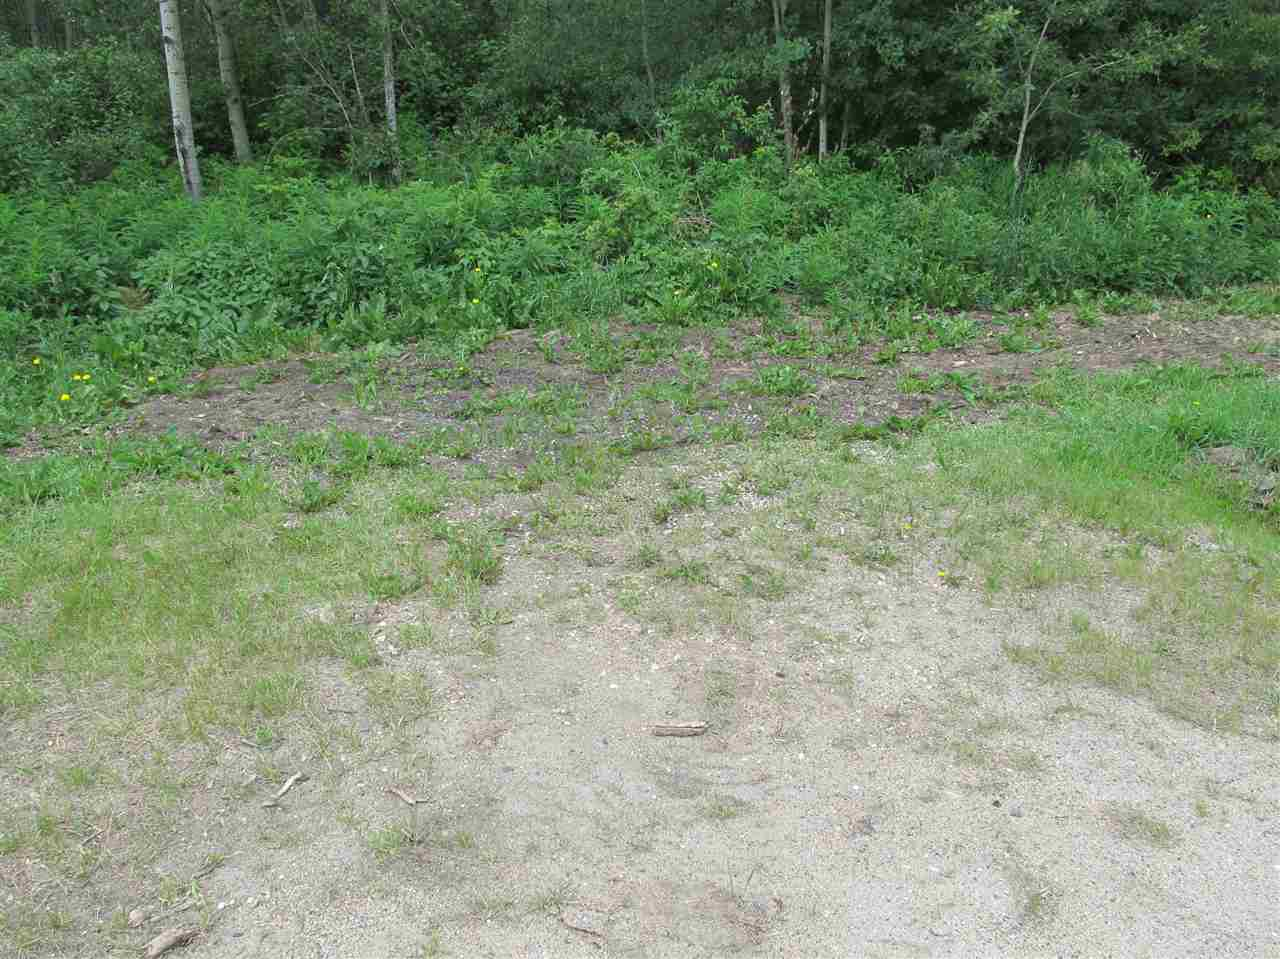 Photo 5: 453 Lakeview Drive: Rural Lac Ste. Anne County Rural Land/Vacant Lot for sale : MLS® # E4046326